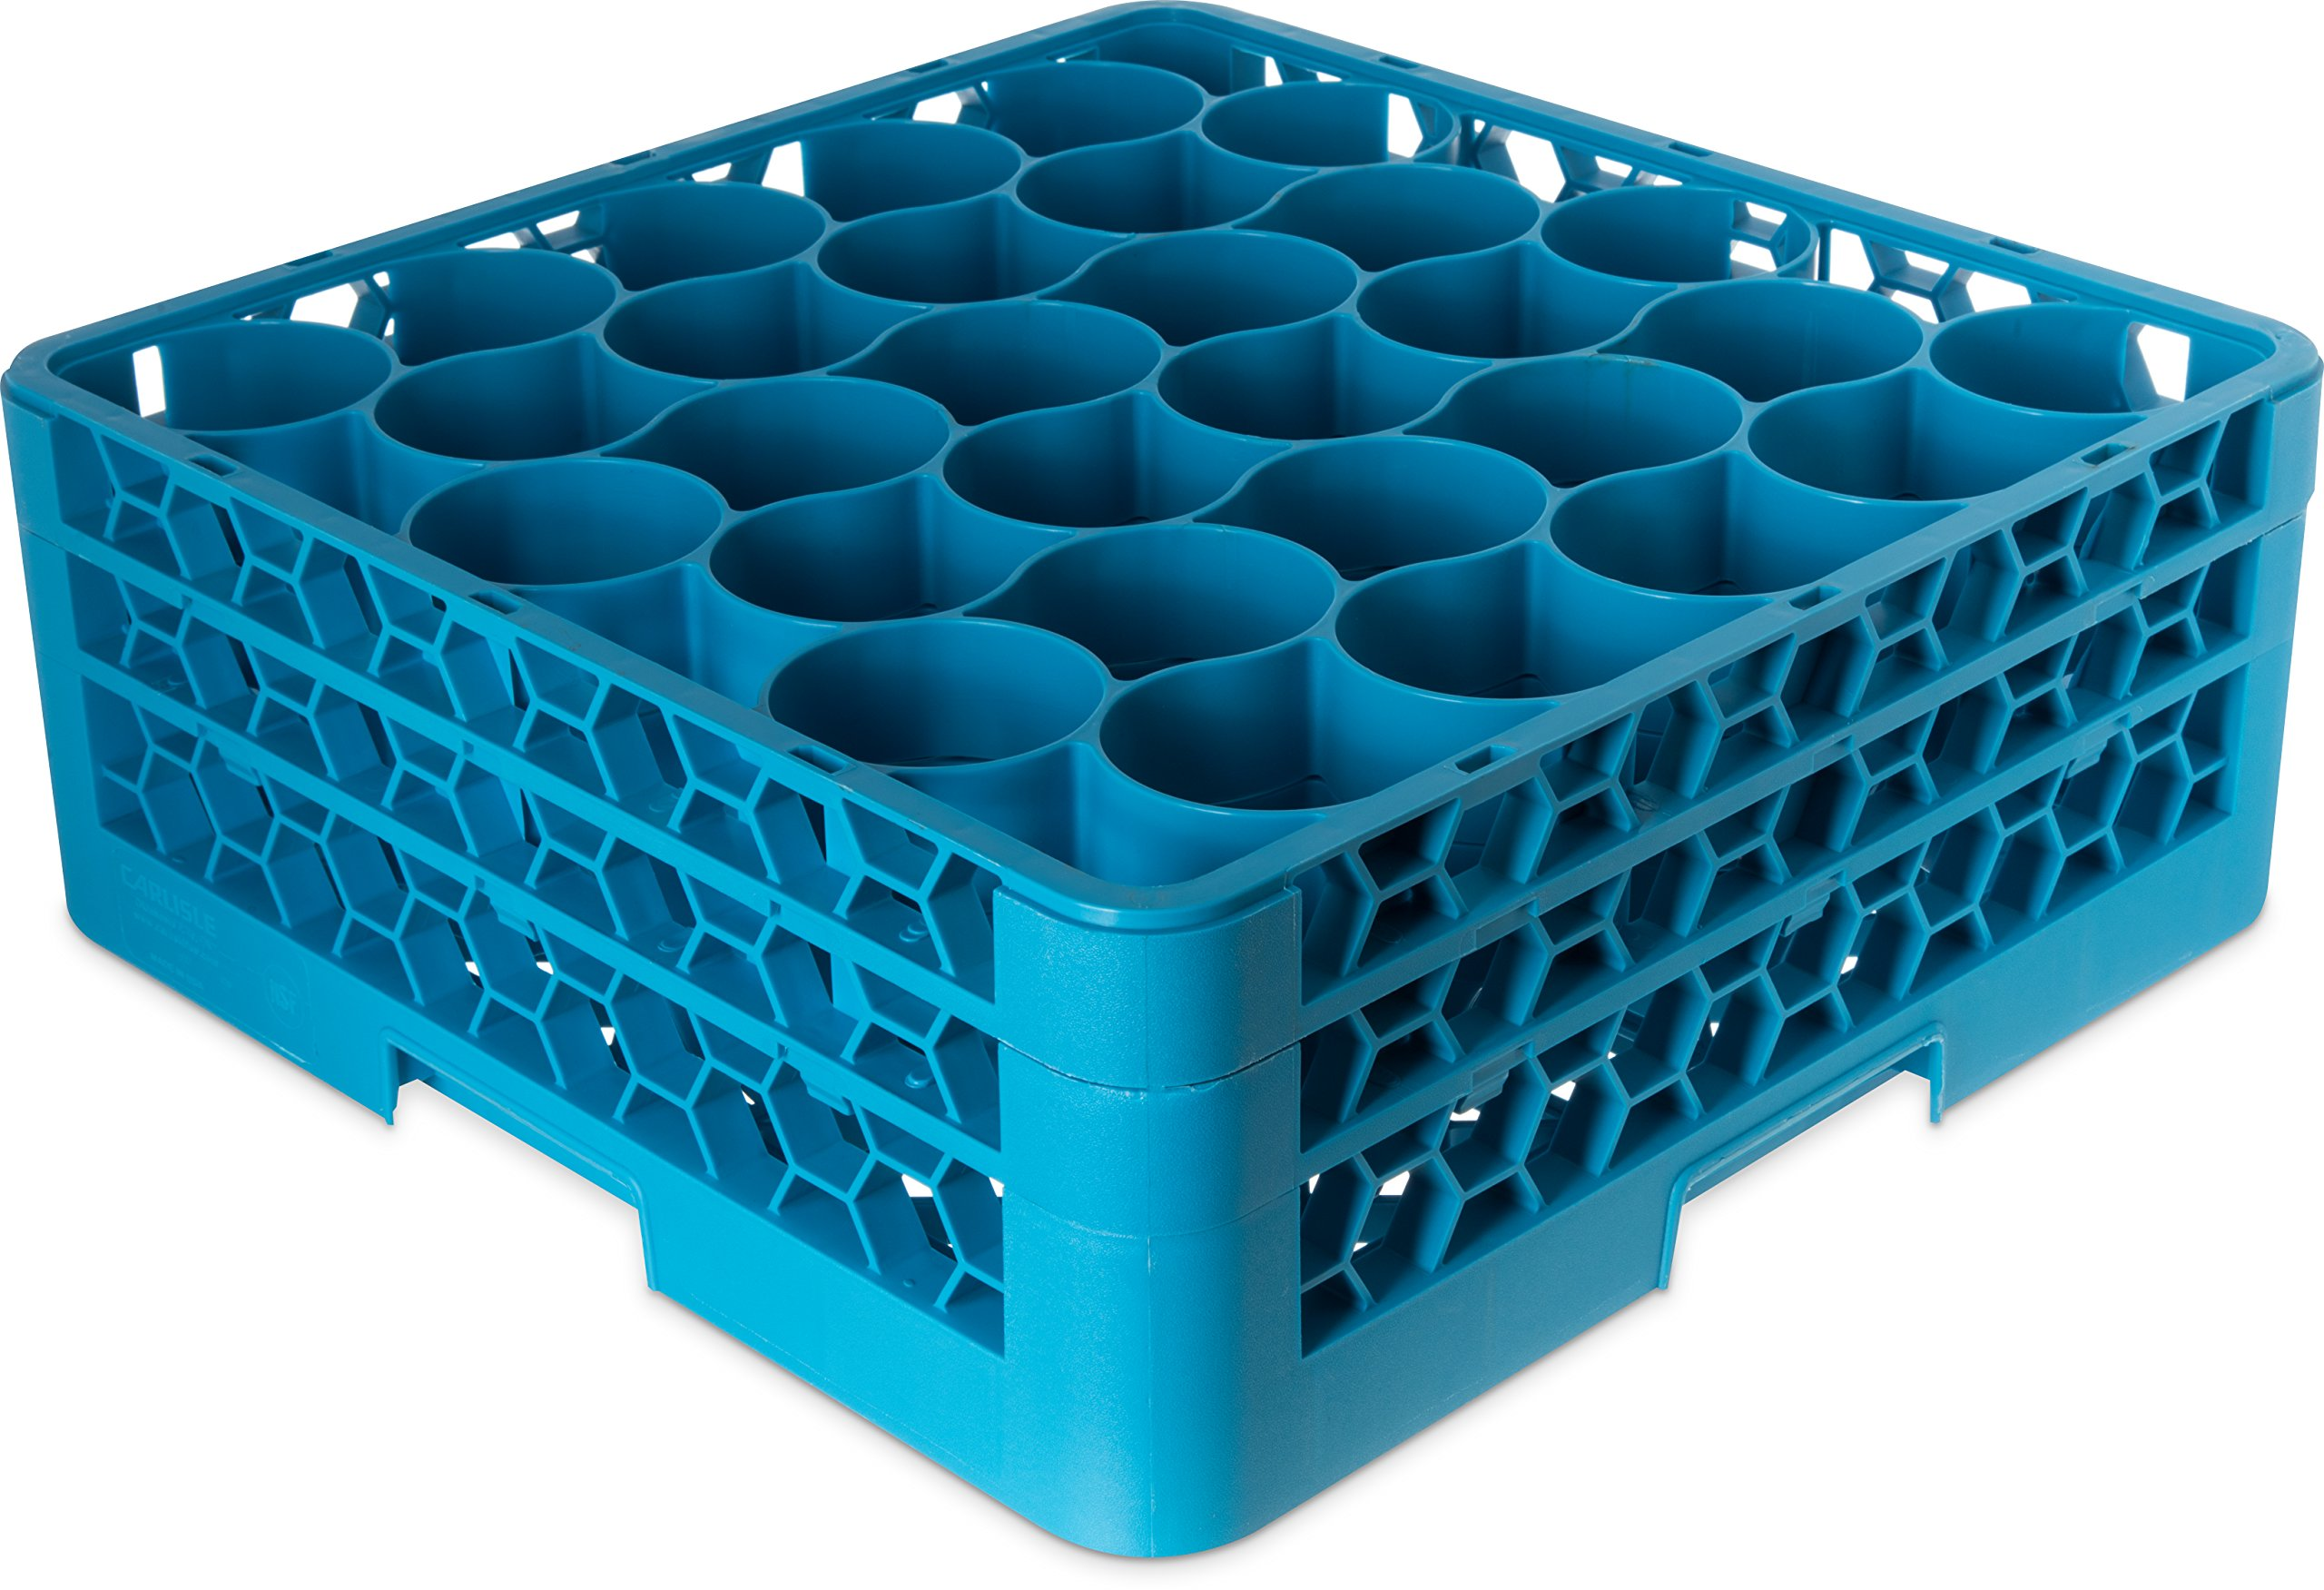 Carlisle RW30-114 OptiClean NeWave Polypropylene 30-Compartment Glass Rack with 2 Extenders, 19-3/4'' L x 19-3/4'' W x 7-1/8'' H, Carlisle Blue (Case of 3) by Carlisle